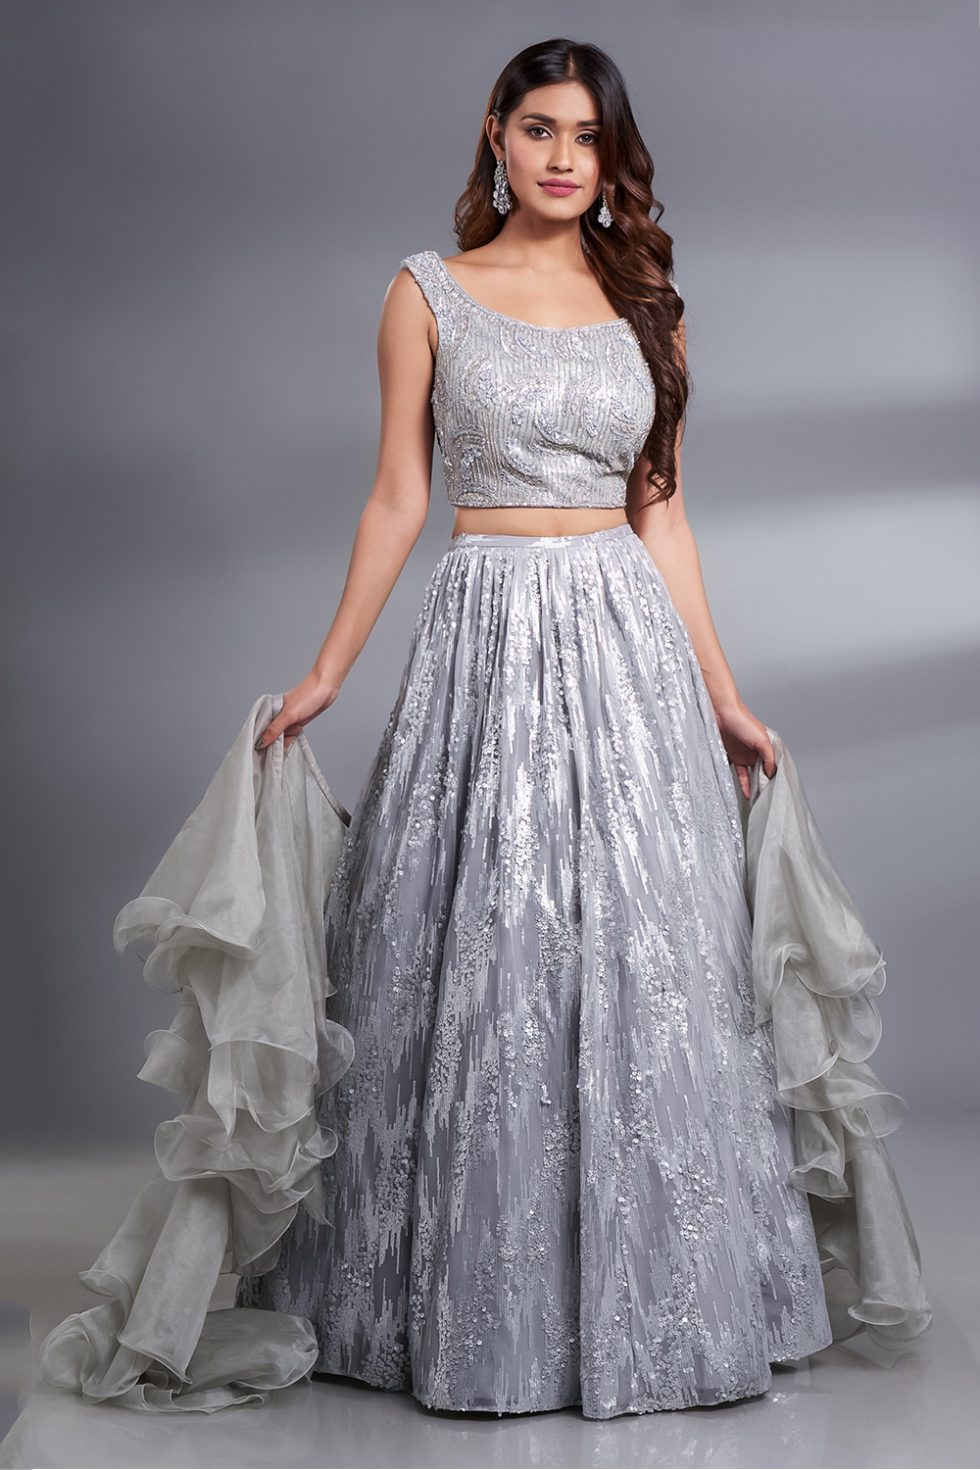 Silver grey shimmery lehenga set with a hand embroidered blouse paired with a ruffled dupatta and silver embellishments.